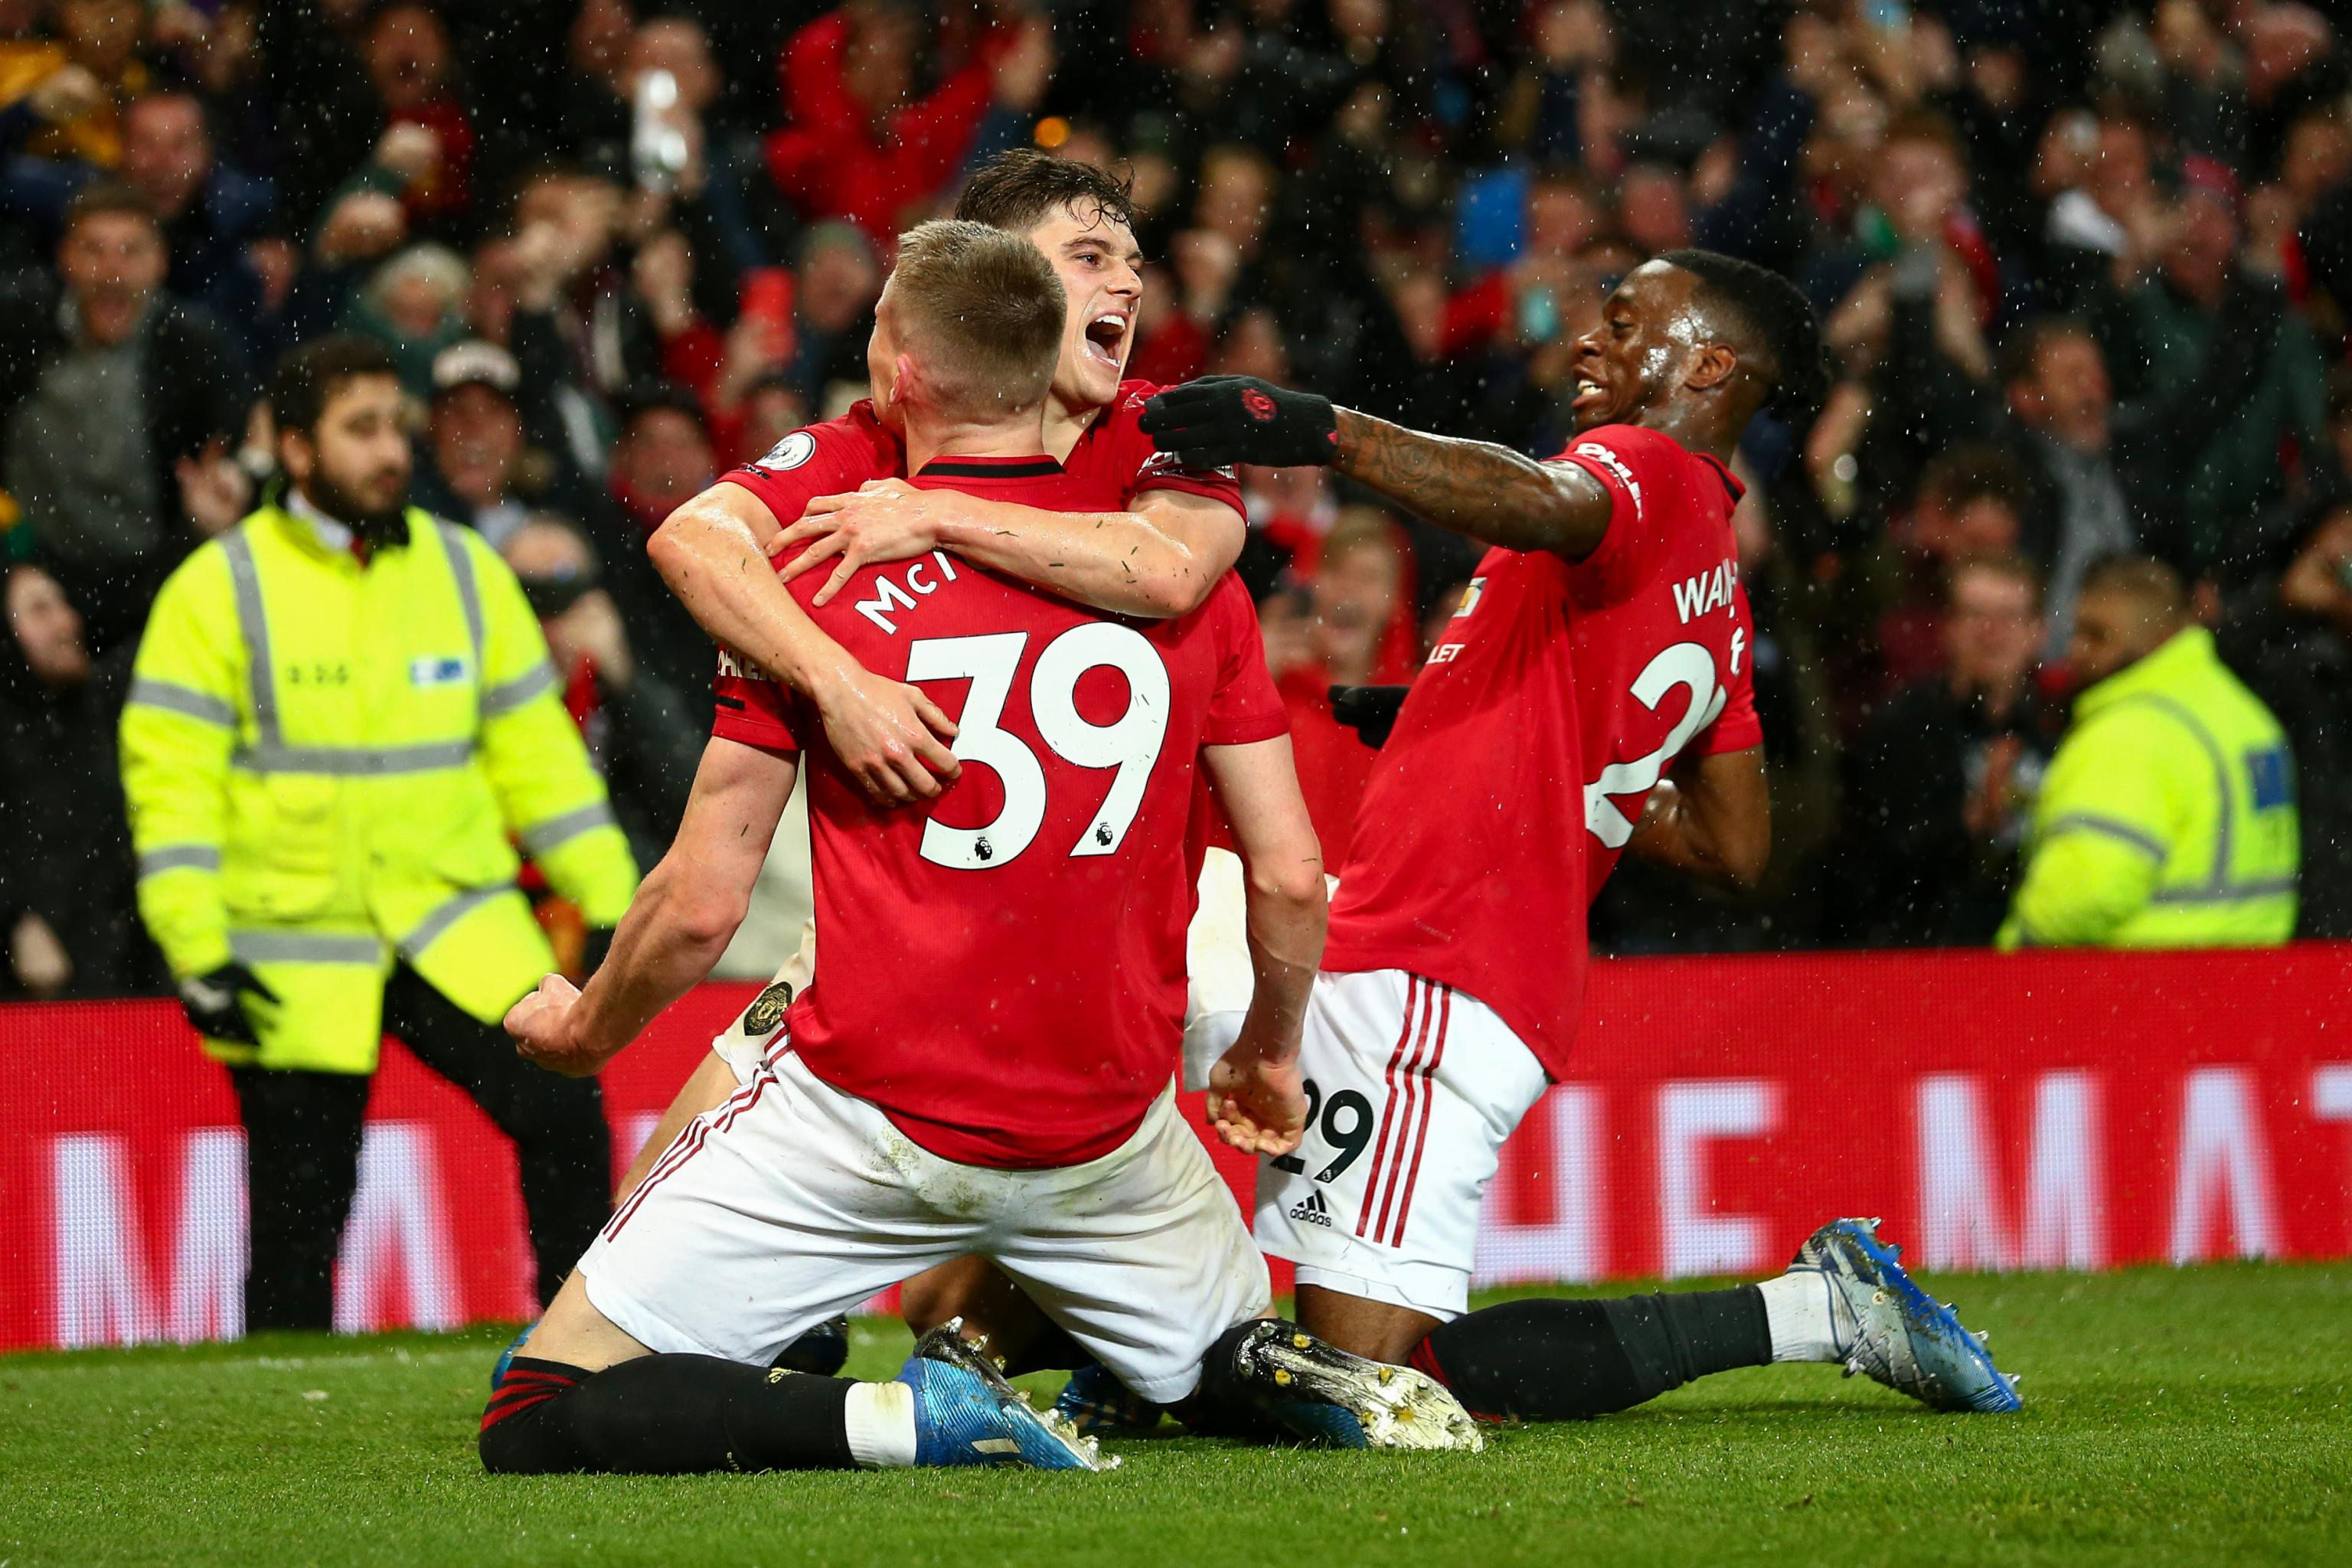 Epl Winners And Losers After Sunday S 2020 Week 29 Premier League Results Bleacher Report Latest News Videos And Highlights